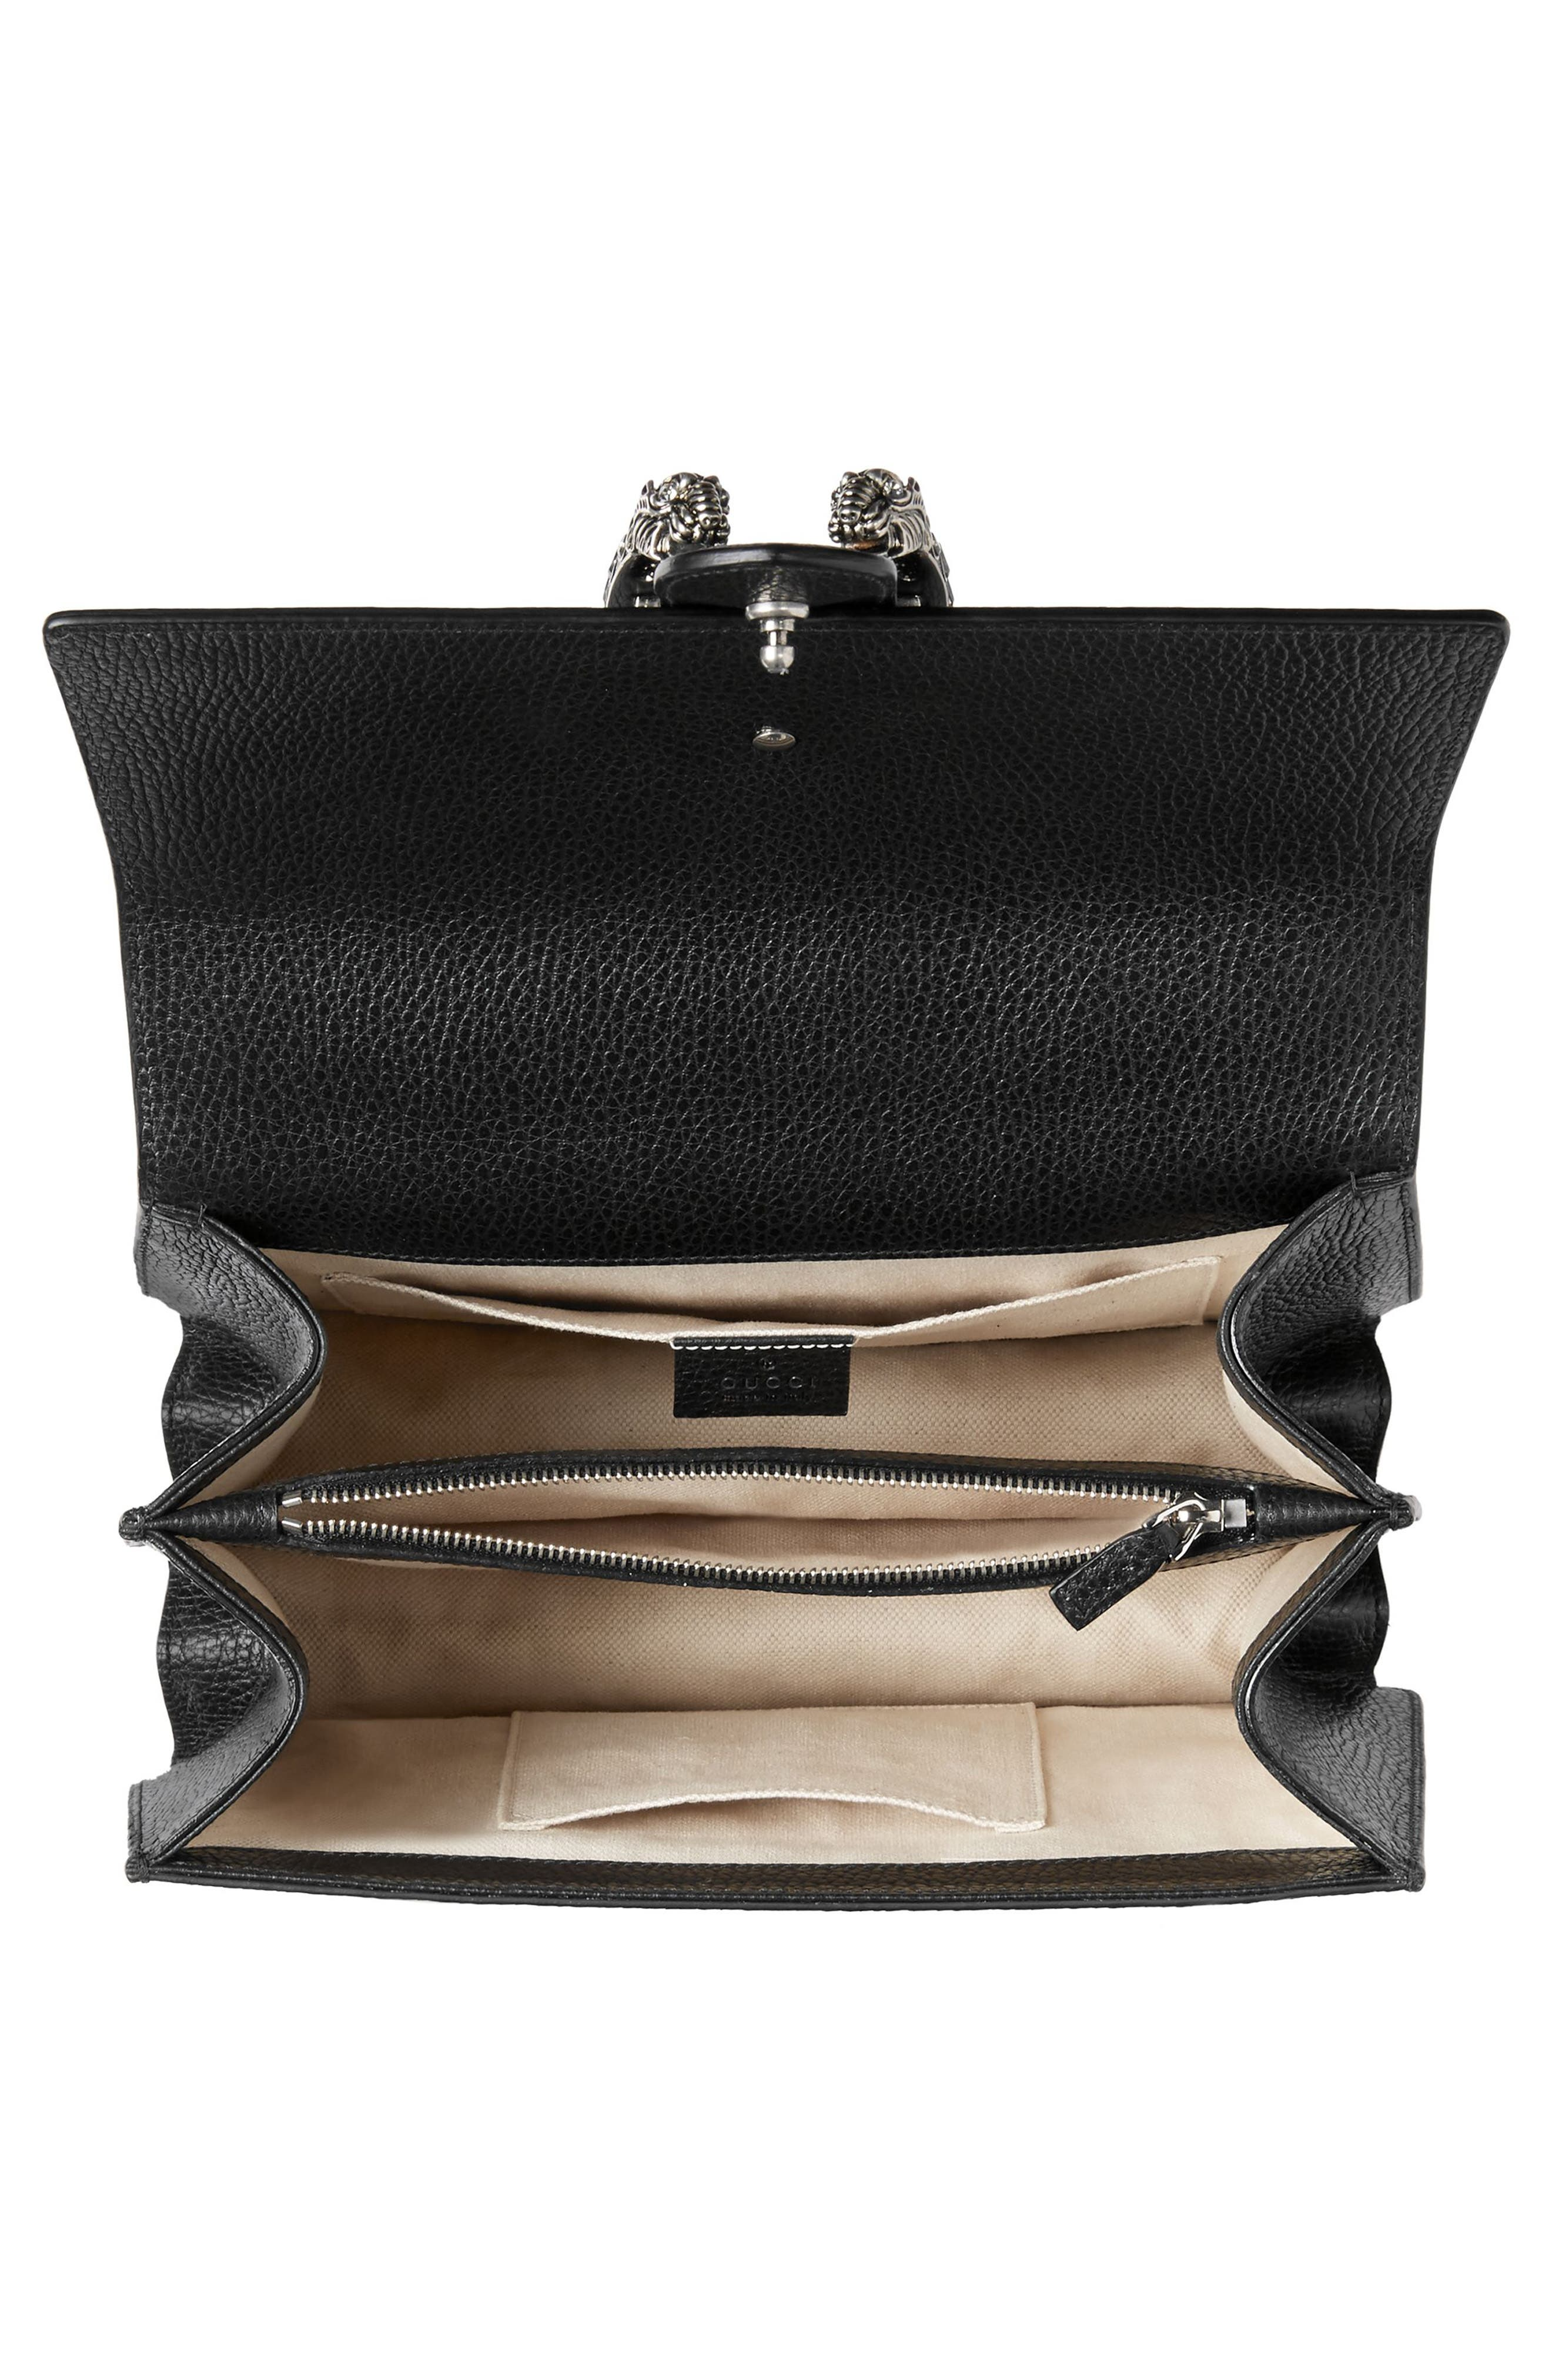 Medium Dionysus Leather Top Handle Satchel,                             Alternate thumbnail 4, color,                             NERO/ VRV/ BLACK DIAMOND